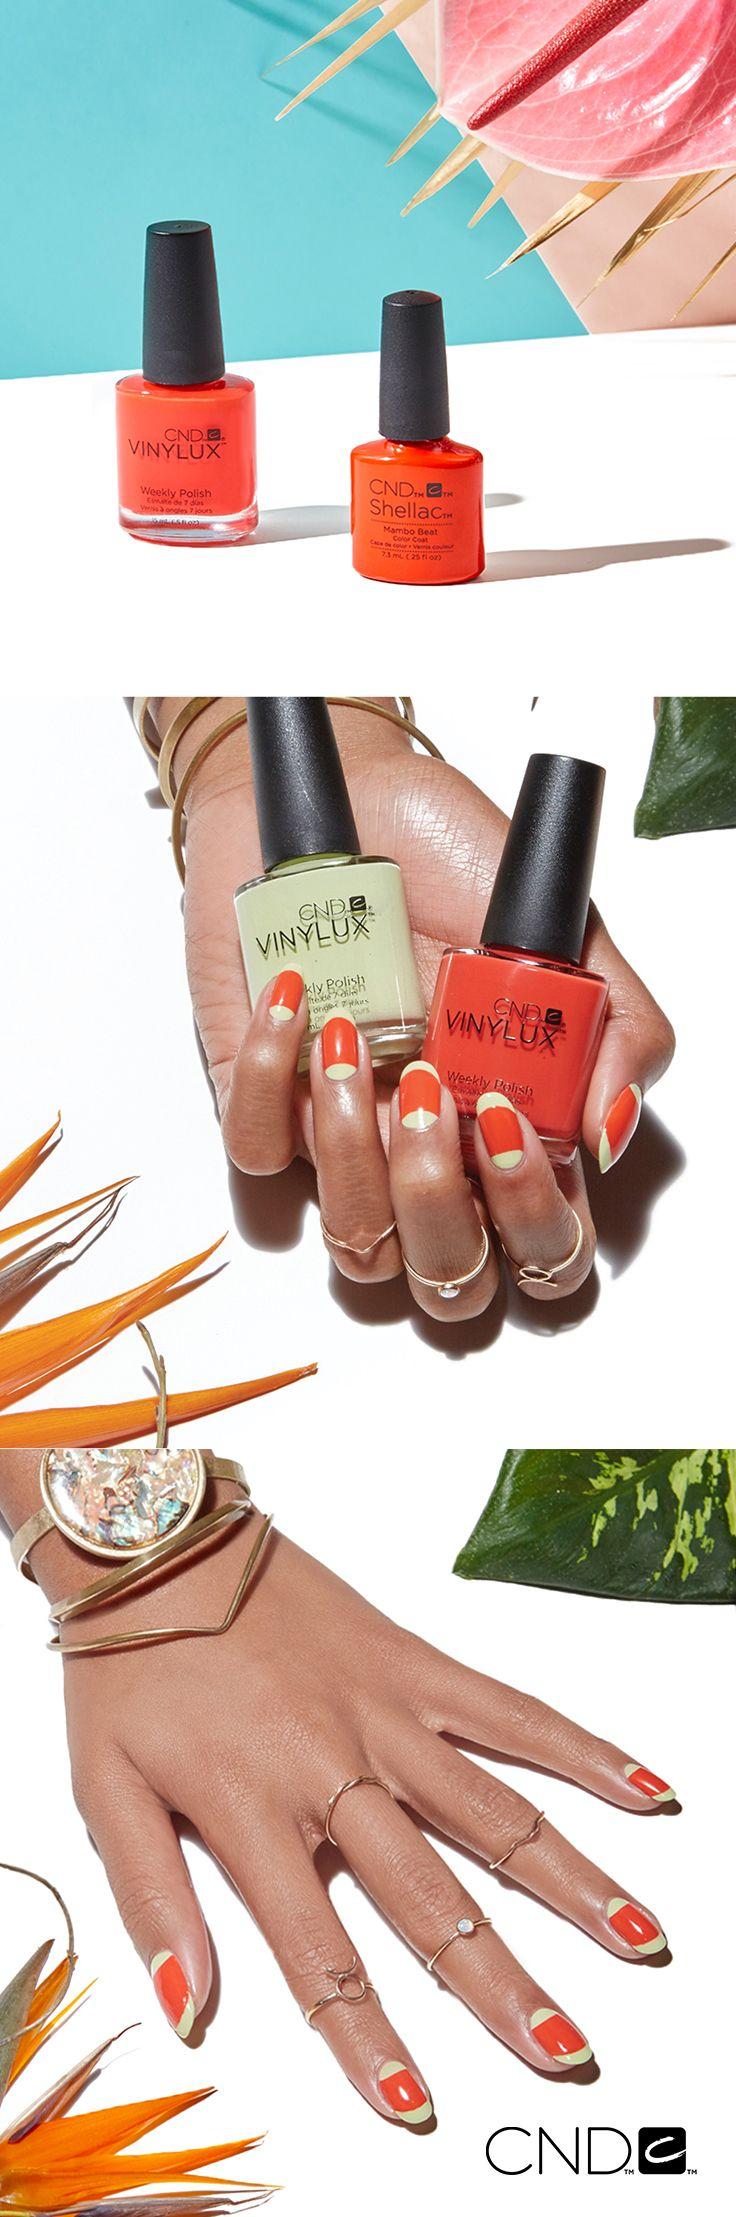 Ask your nail pro to recreate this fun twist on a French manicure with Sugarcane and Mambo Beat from NEW #CNDRhythmAndHeat